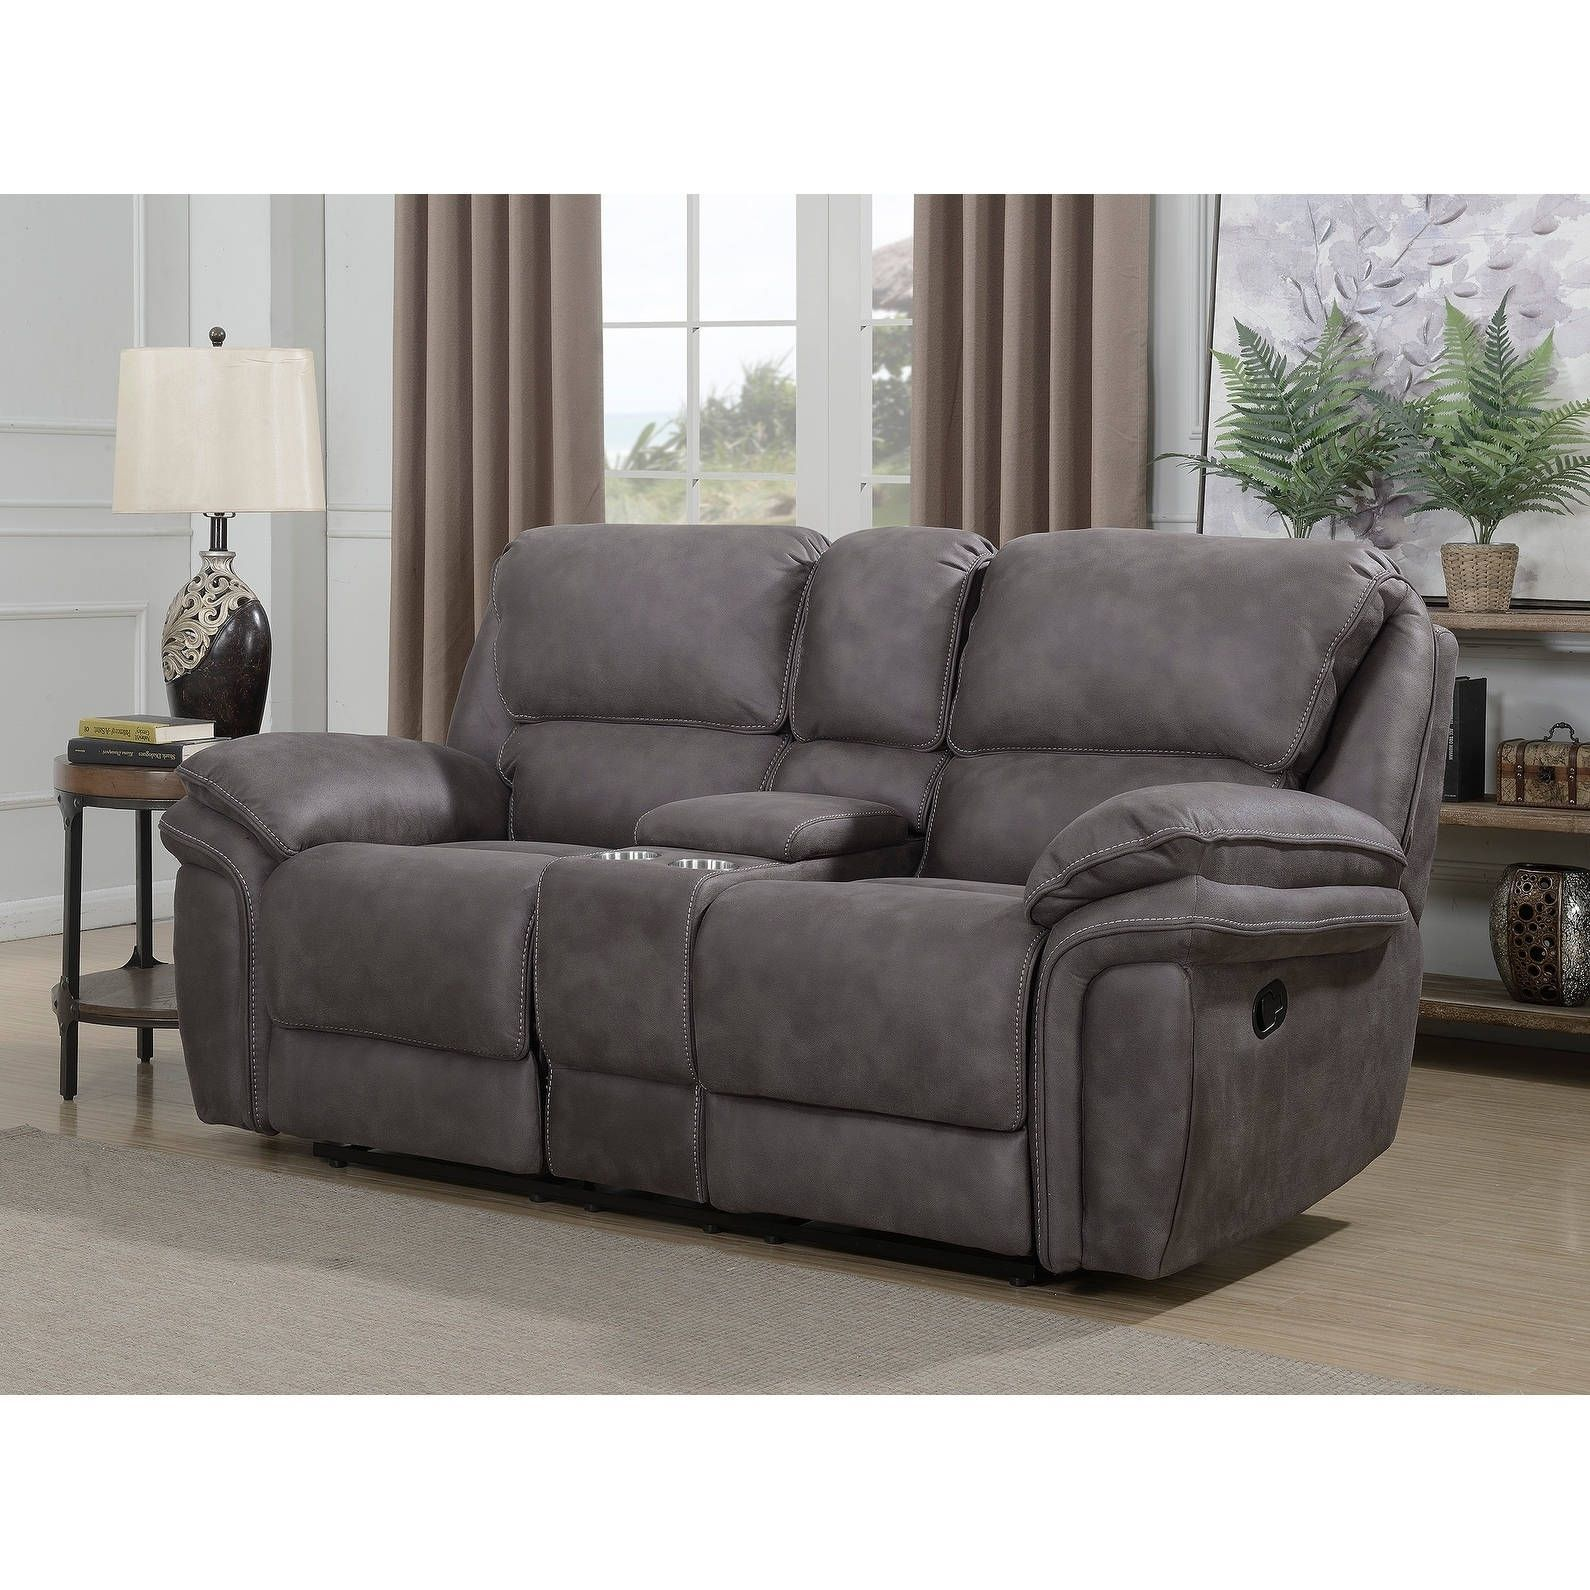 Sofa Relax Con Usb Henry Dual Lay Flat Reclining Loveseat With Storage Console